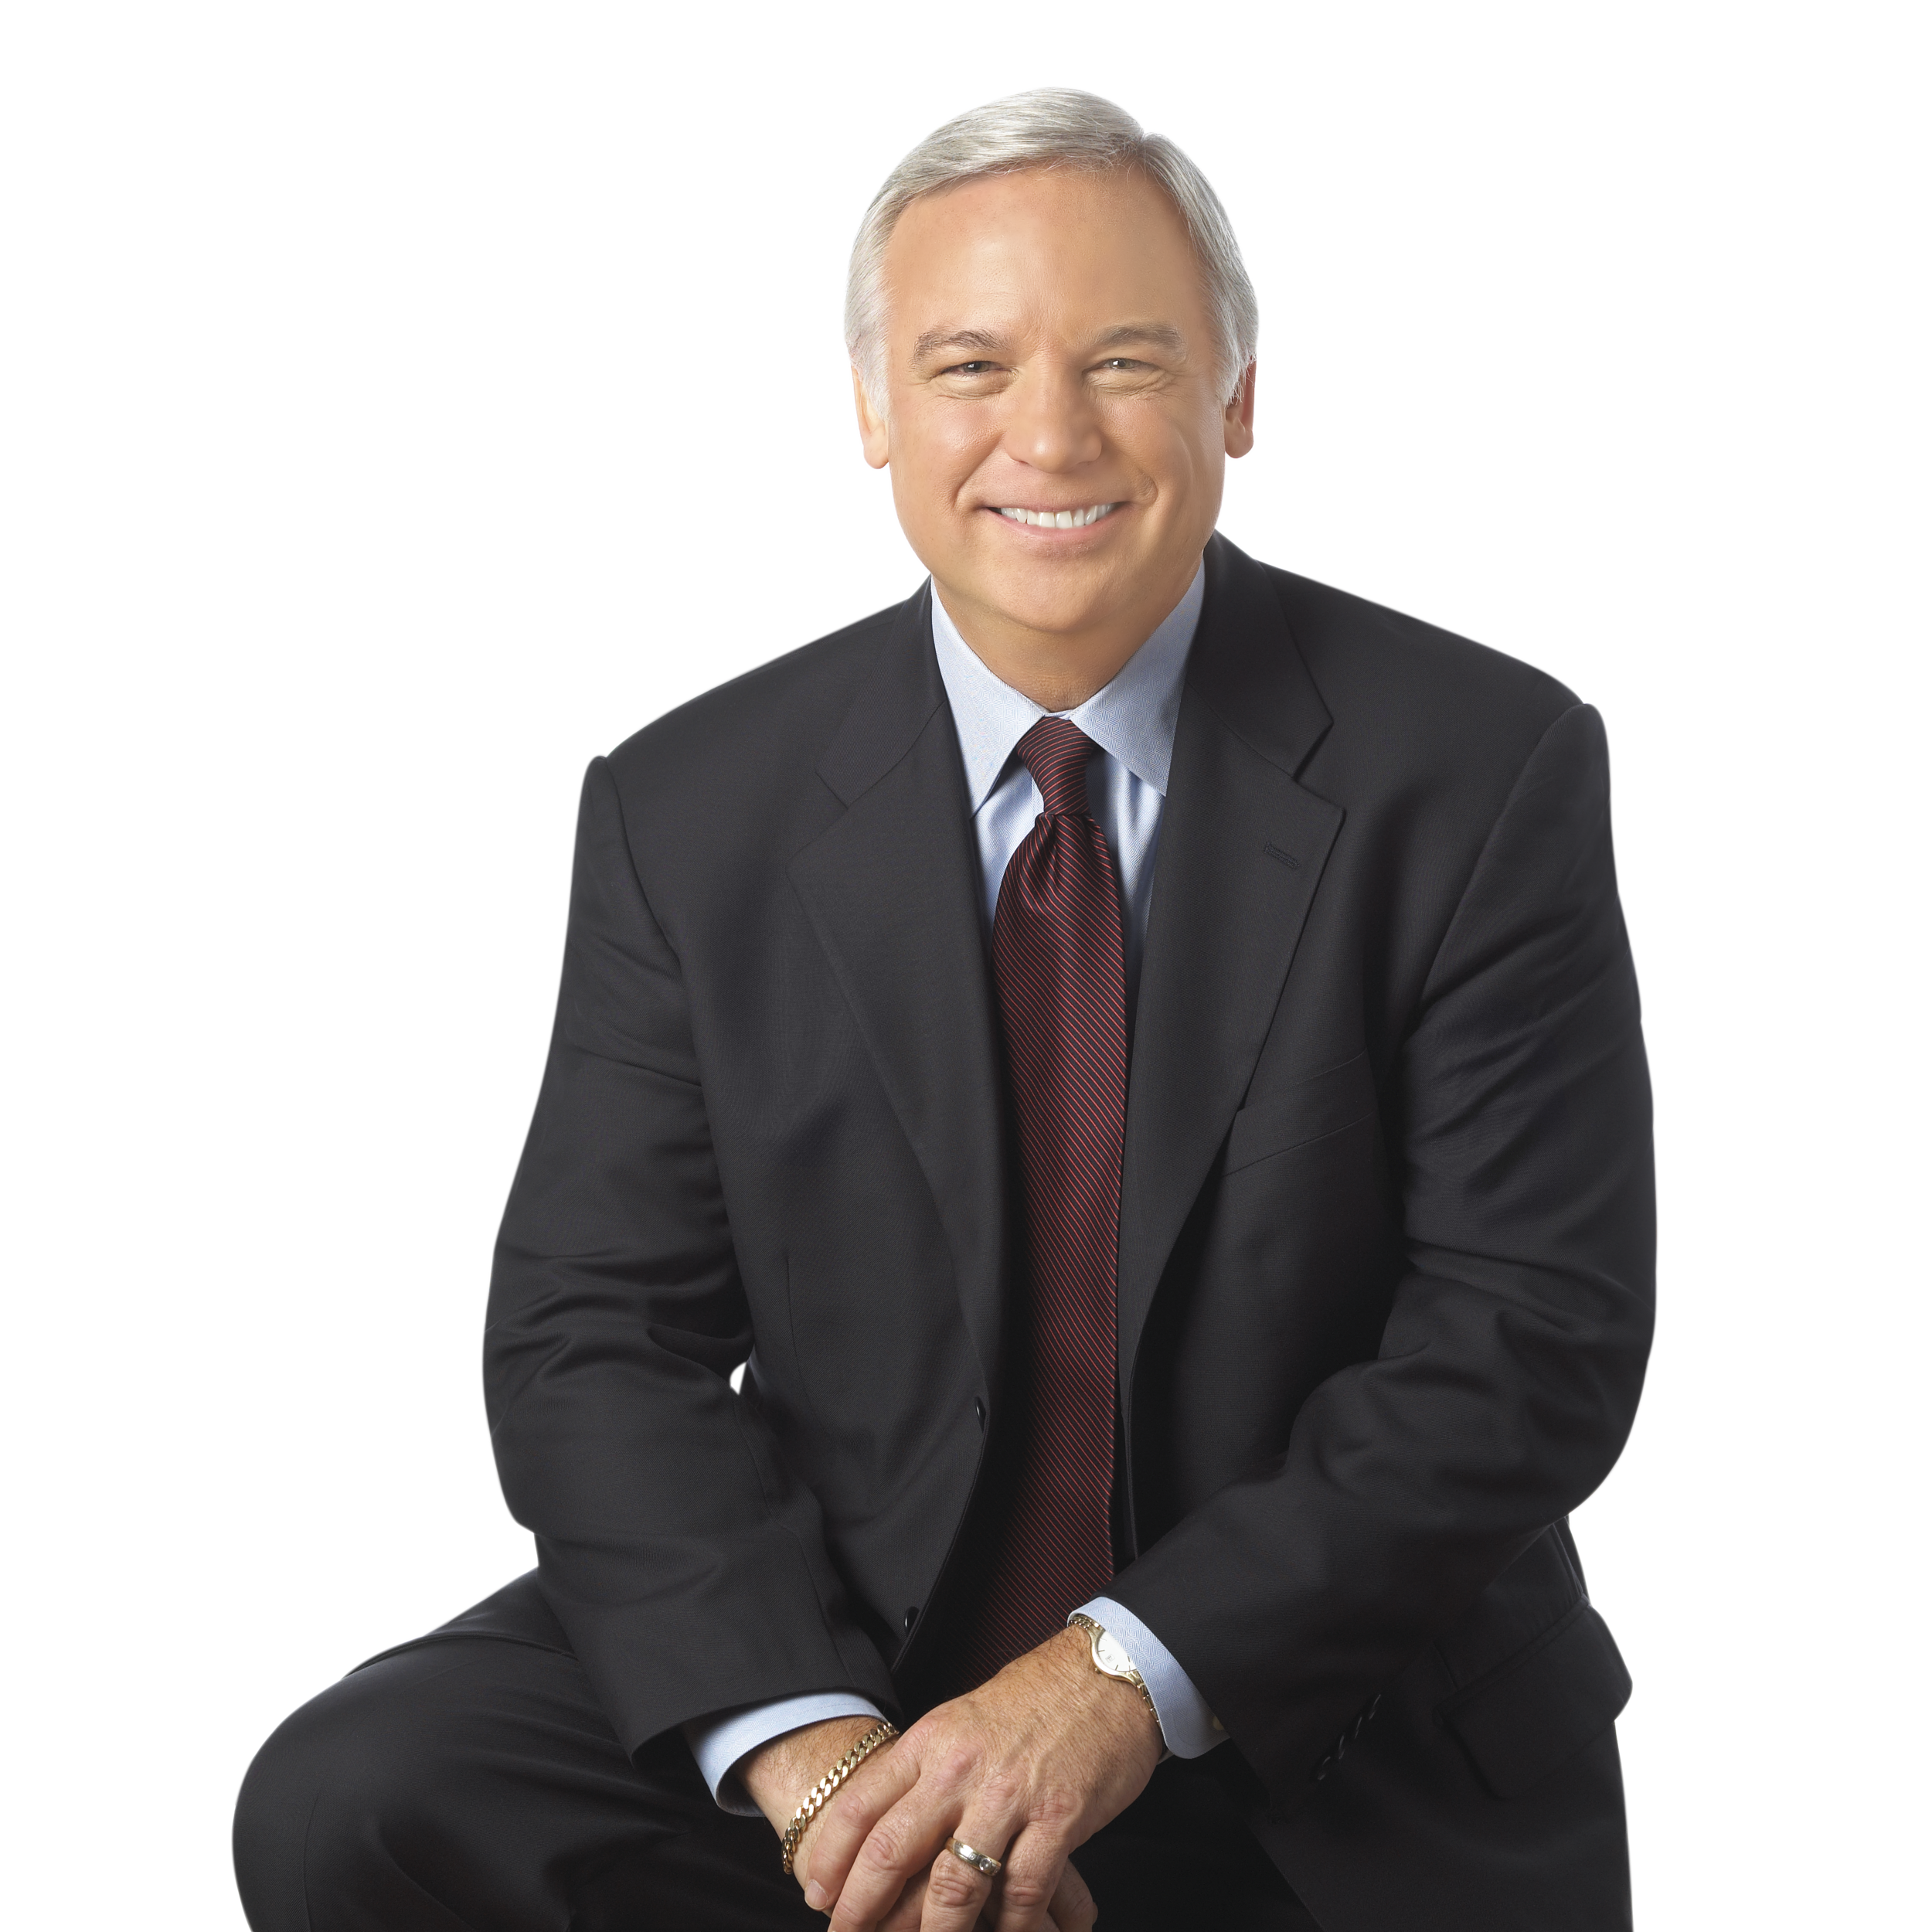 """""""This book is a wonderful collection of stories andbusiness building tools that gives the reader ideas andmotivation to develop a better way to follow up."""" - Jack Canfield, Originator of the Chicken Soup for the Soul® series. The Success Principles: How to Get From Where You Are to Where You Want to Be has been hailed as the new self-improvement classic."""